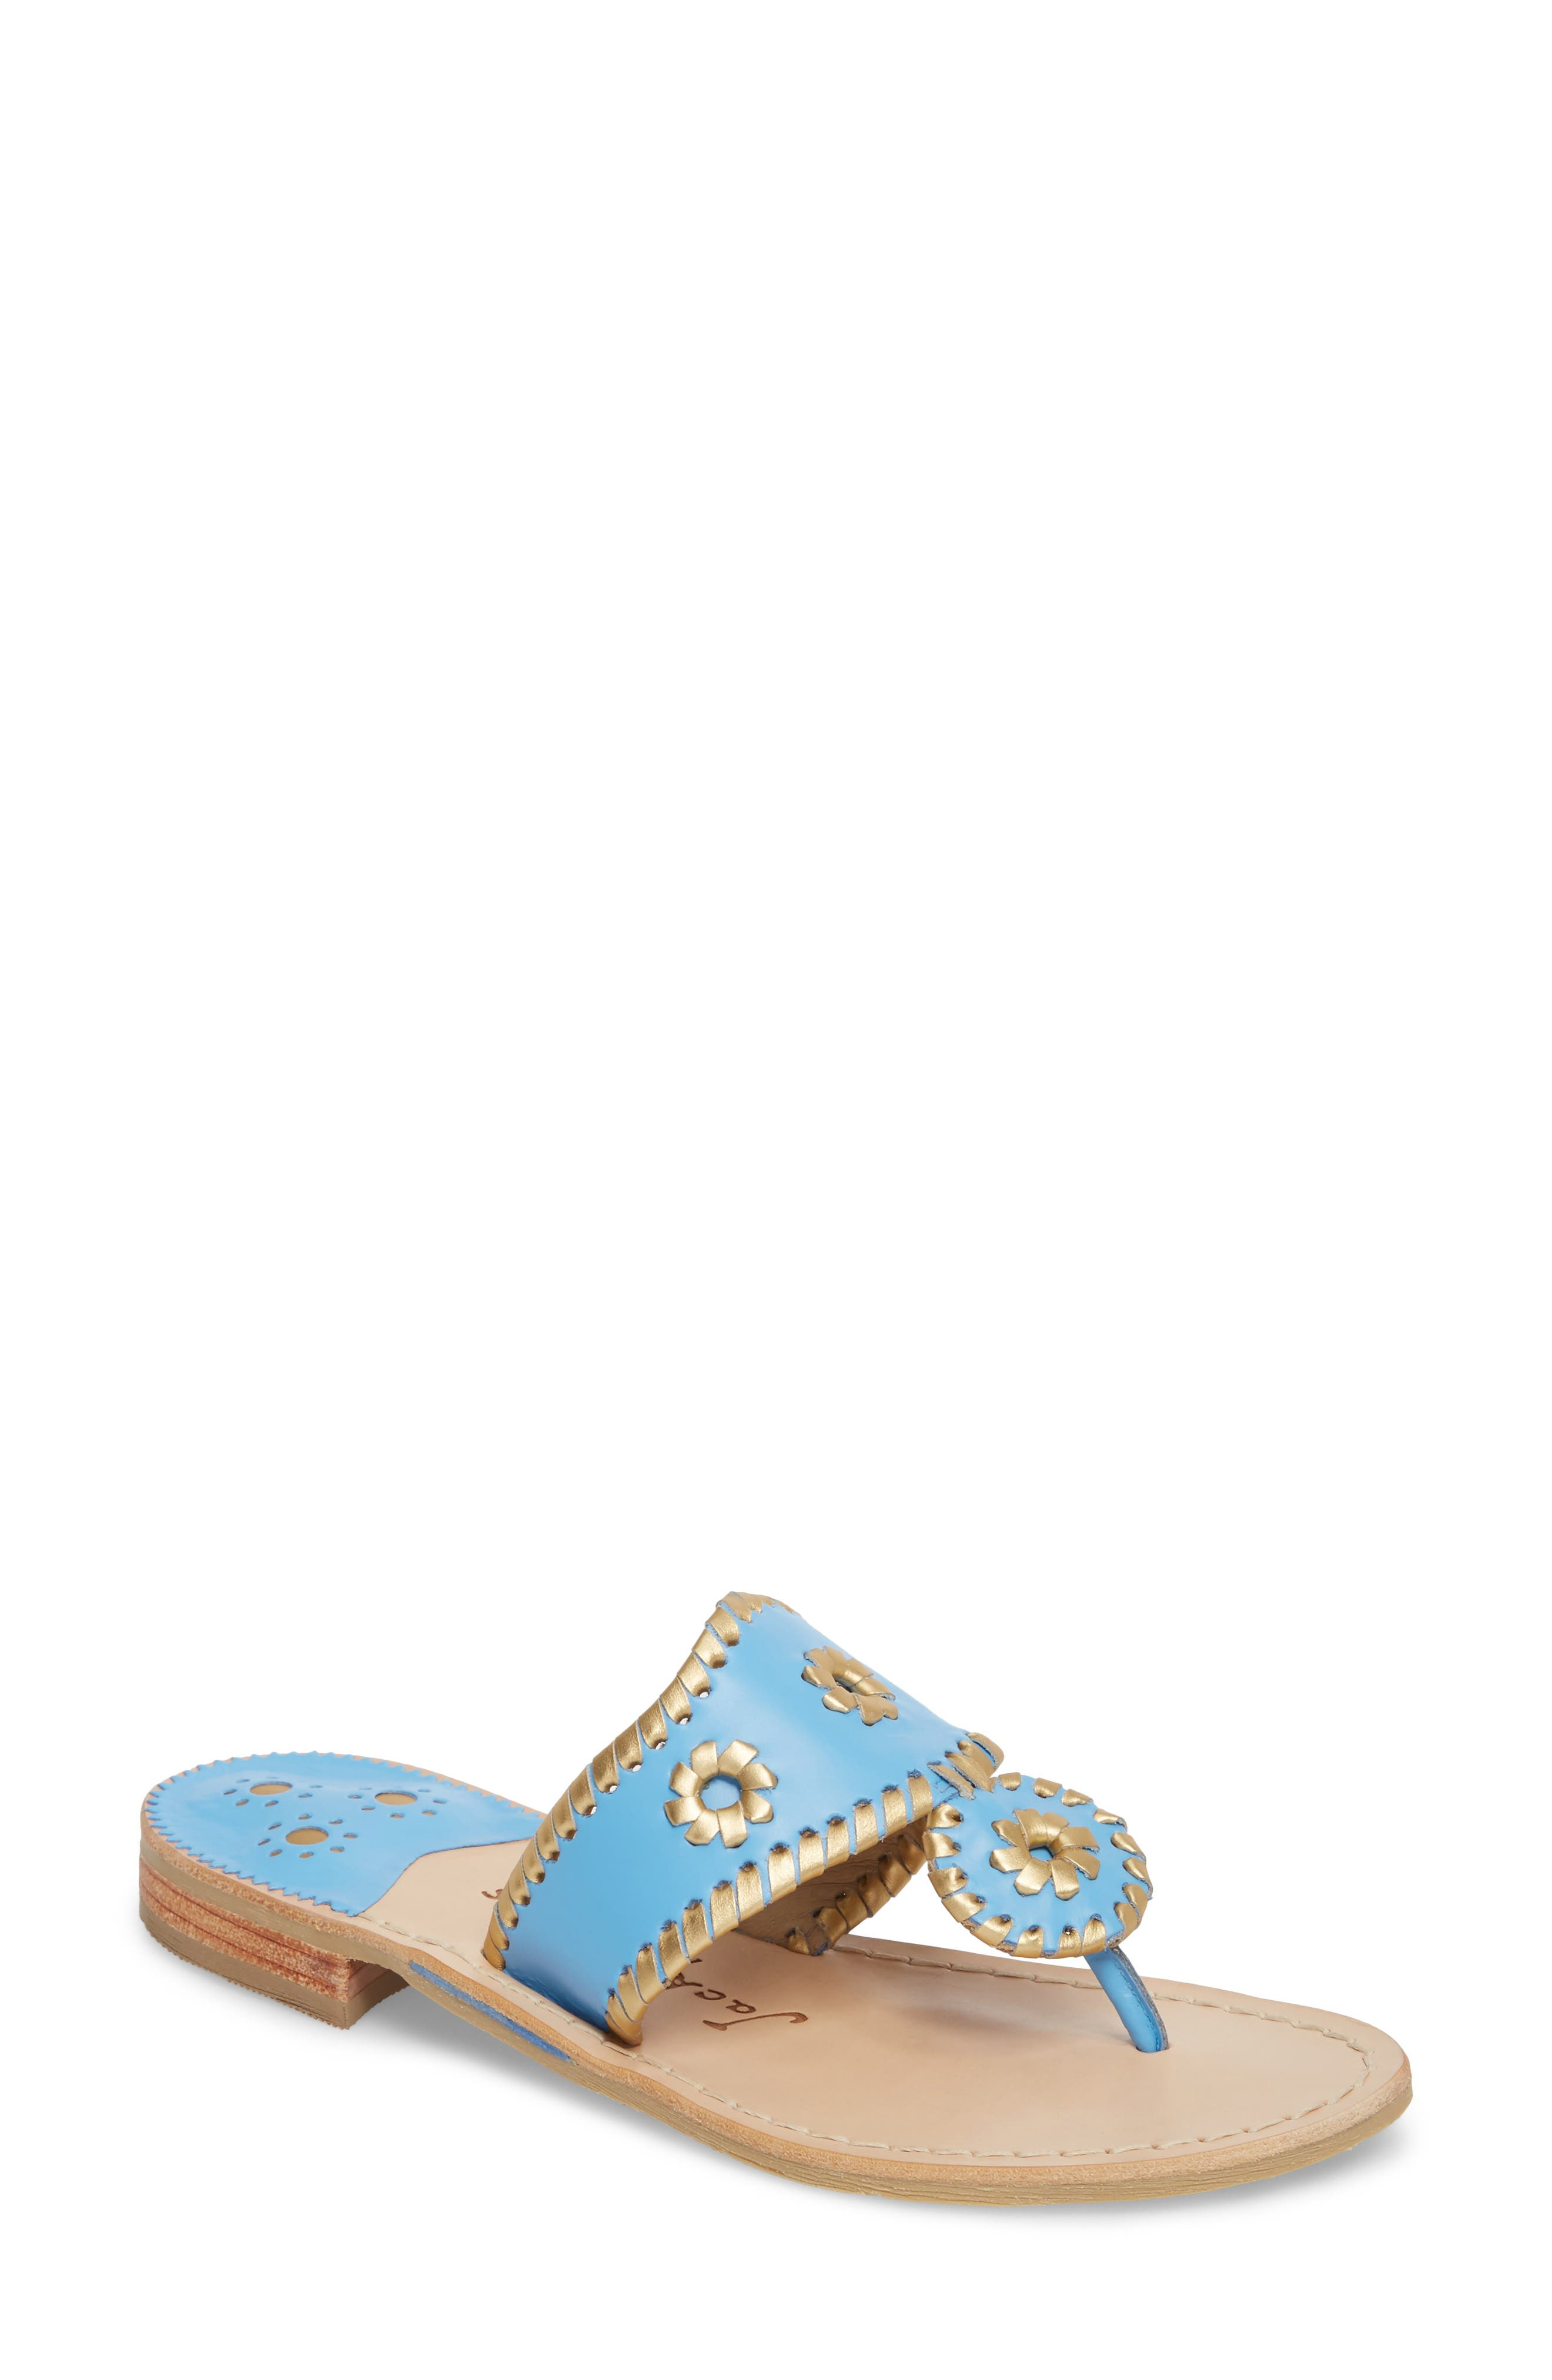 Hollis Flat Sandal,                         Main,                         color, 406